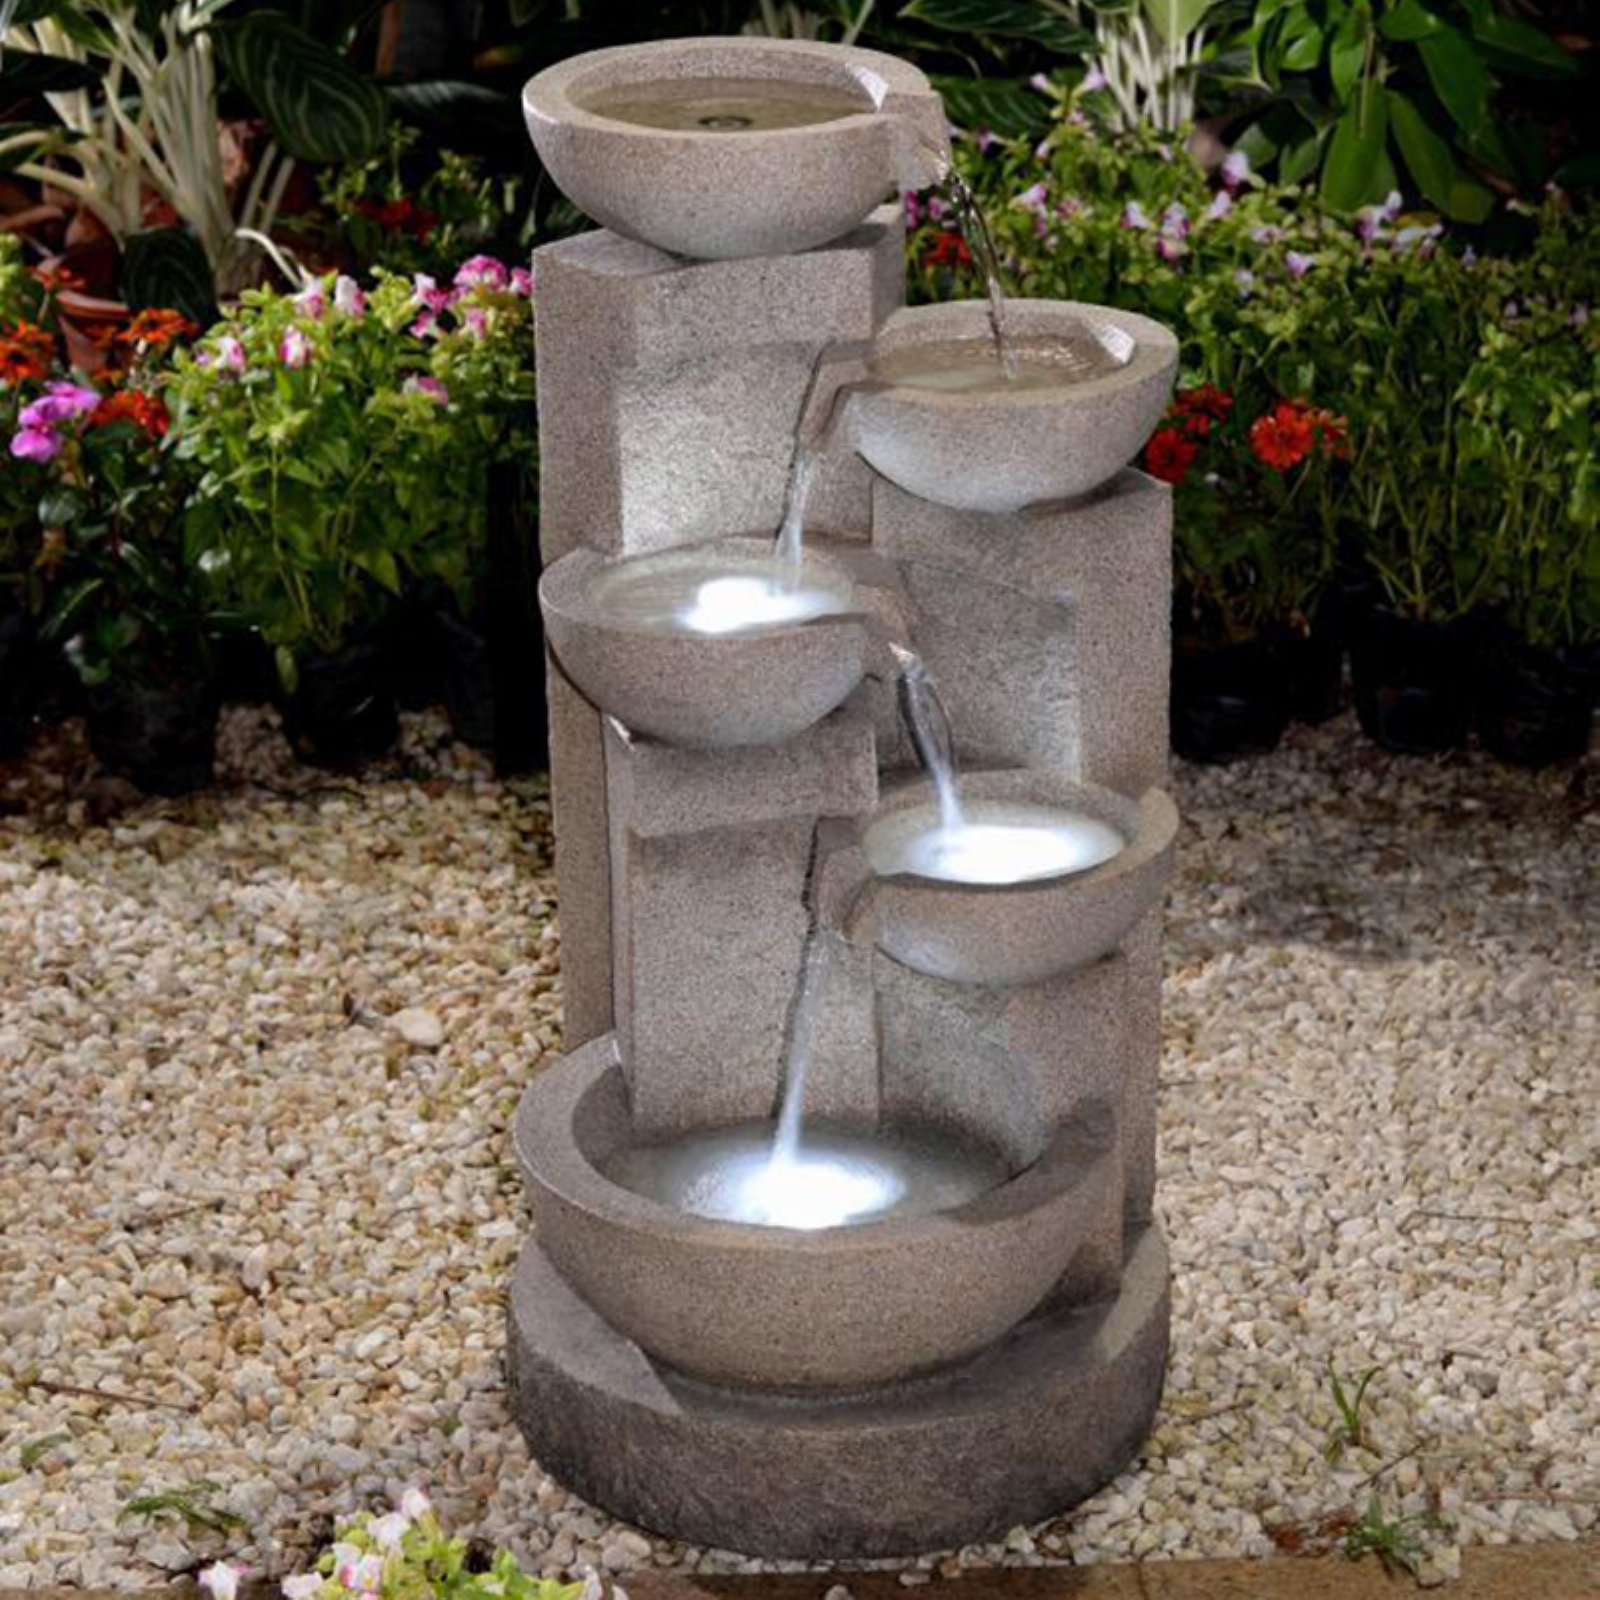 Jeco Multi-Tier Zen Bowls Indoor Outdoor Fountain with LED Light by Jeco Inc